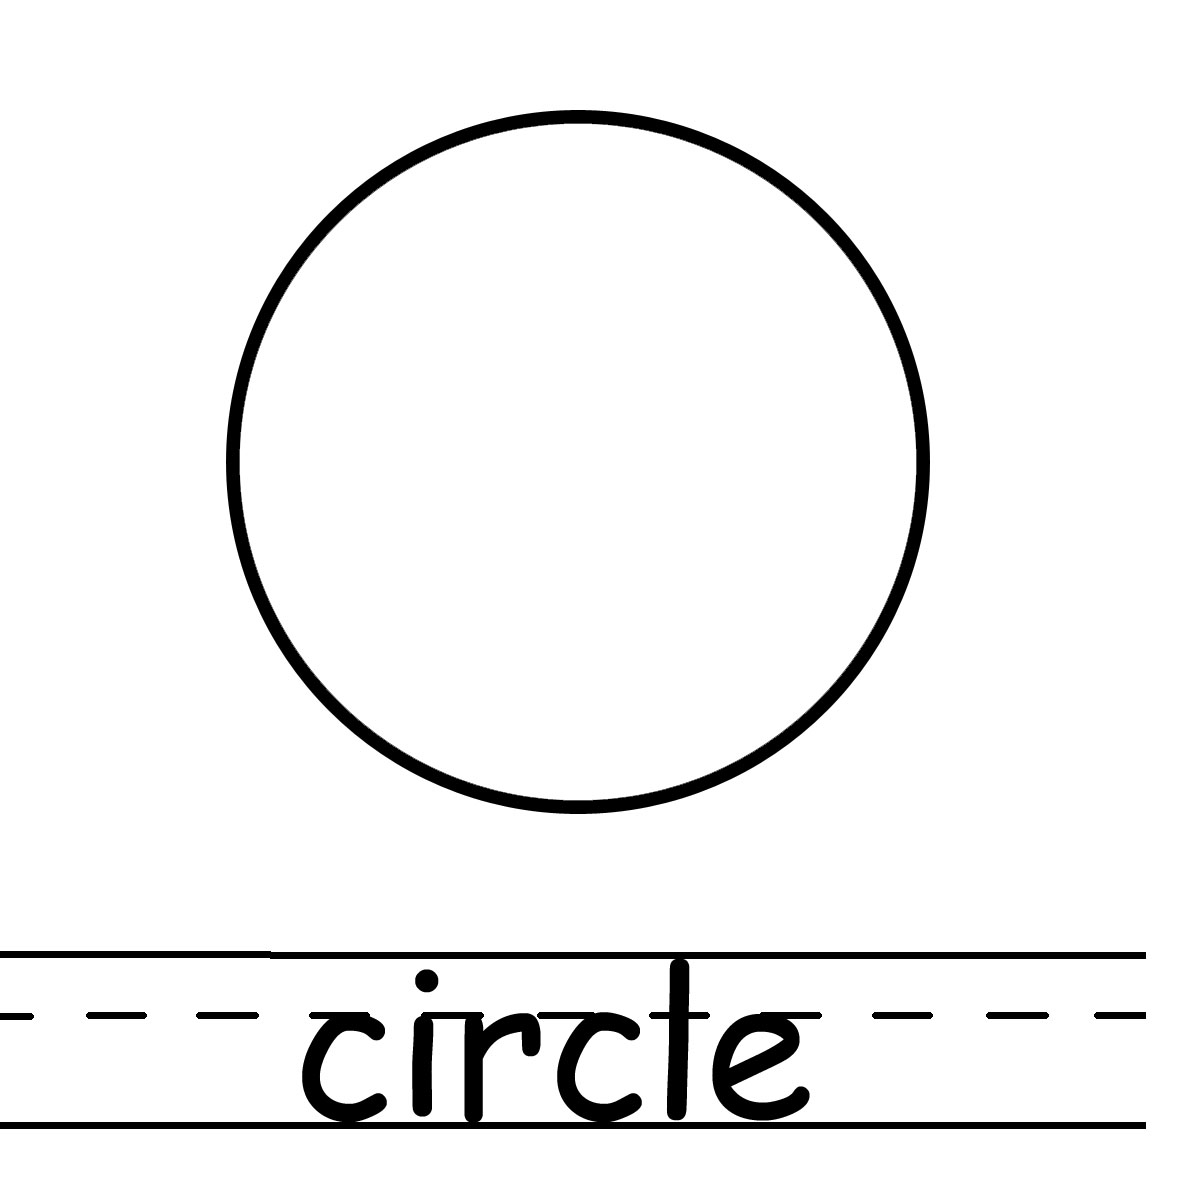 Circle clipart black and white 2 » Clipart Station.